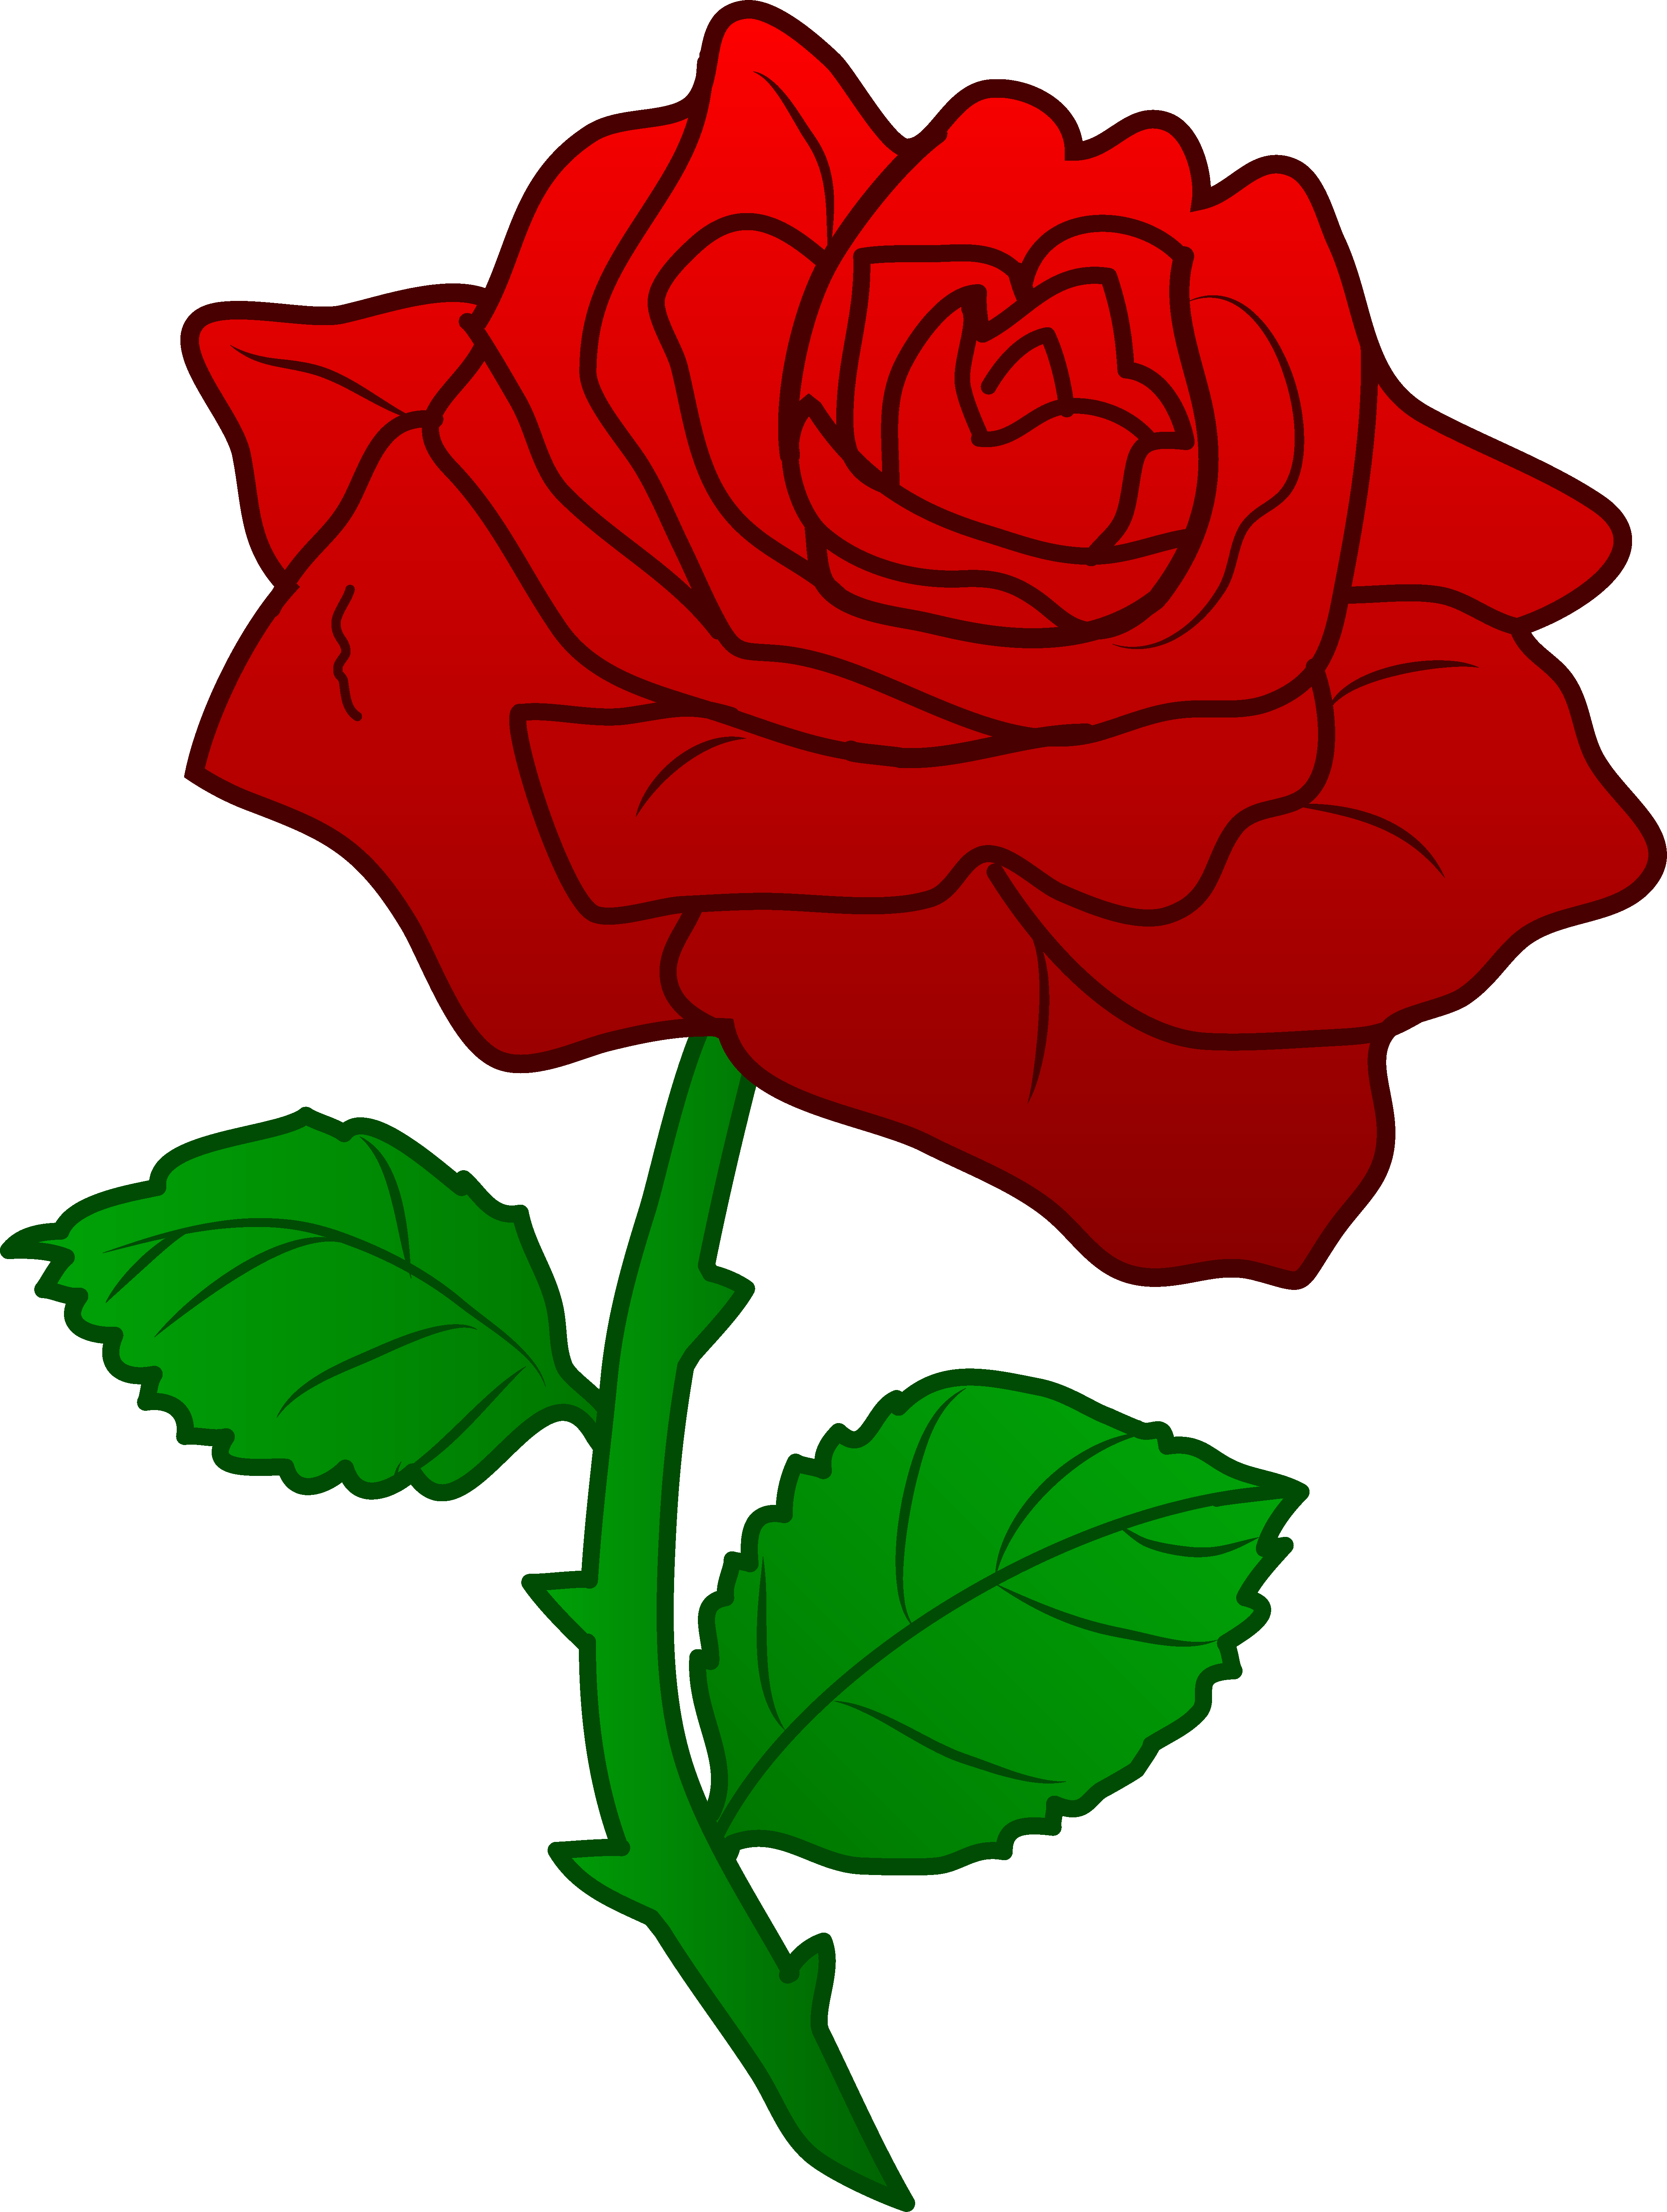 3 clipart rose clip art free library